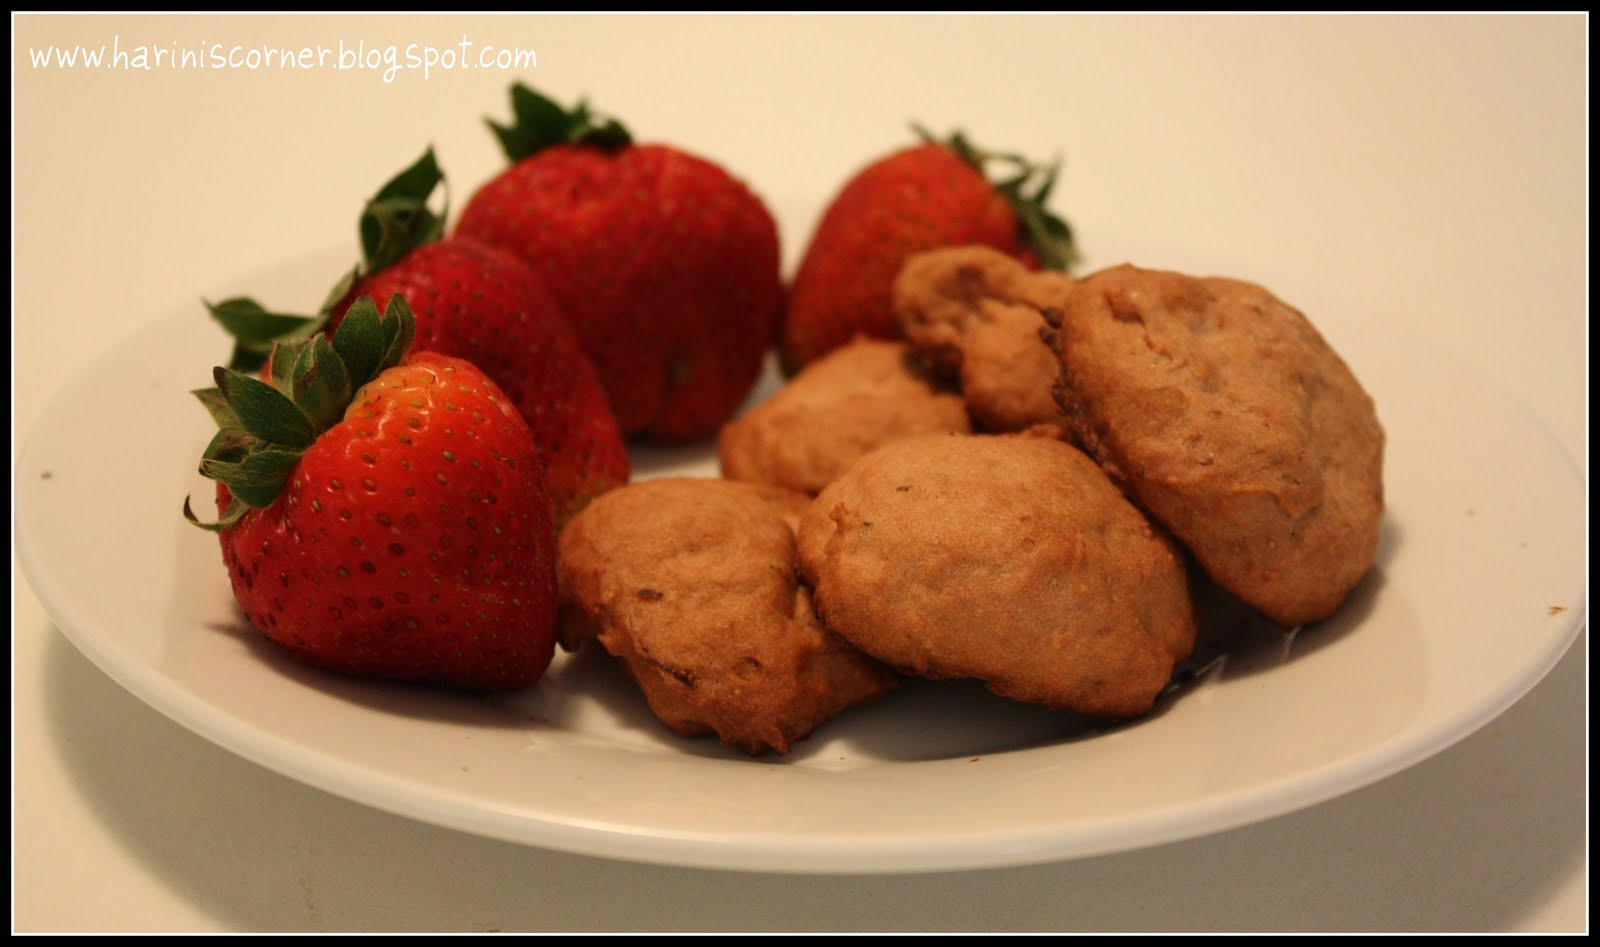 Strawberry drop cookies